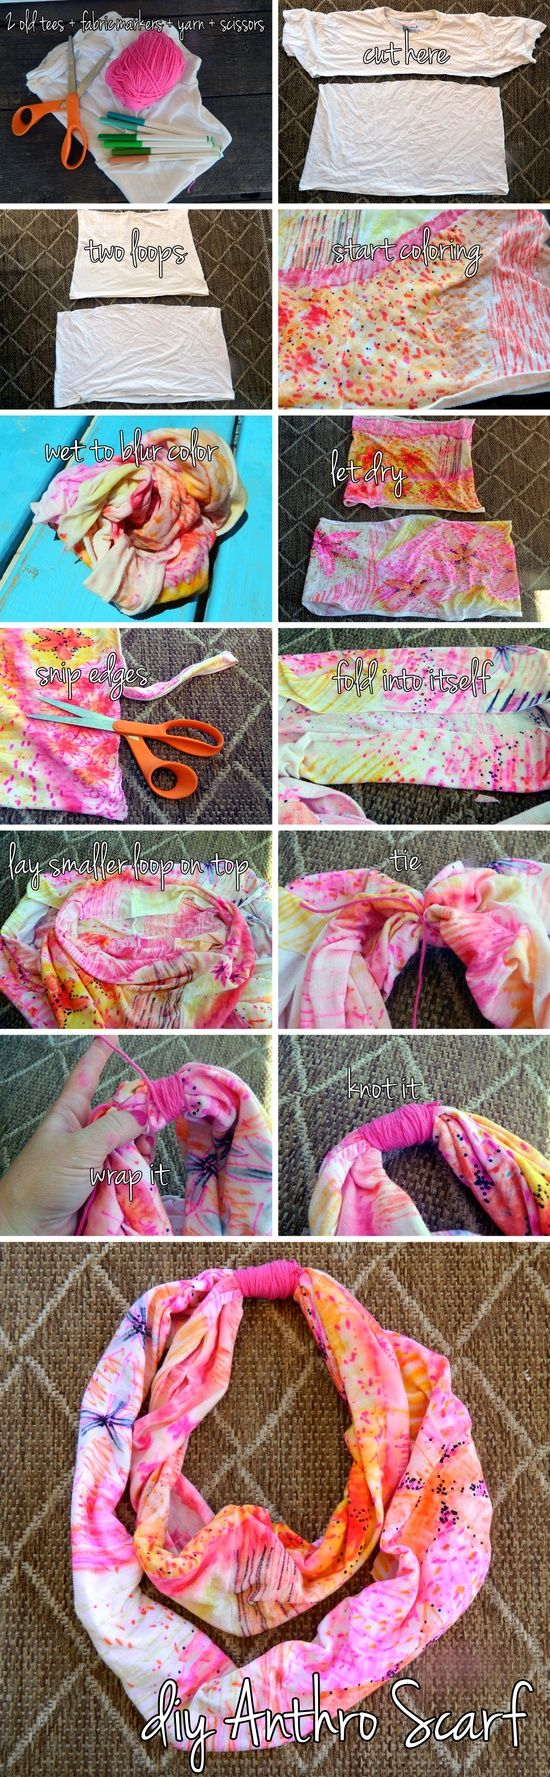 I must try this with my youth group...DIY Anthropologie Scarf. Awesome idea for those old shirts, but I'll do my colors different... Or use the colored shirts